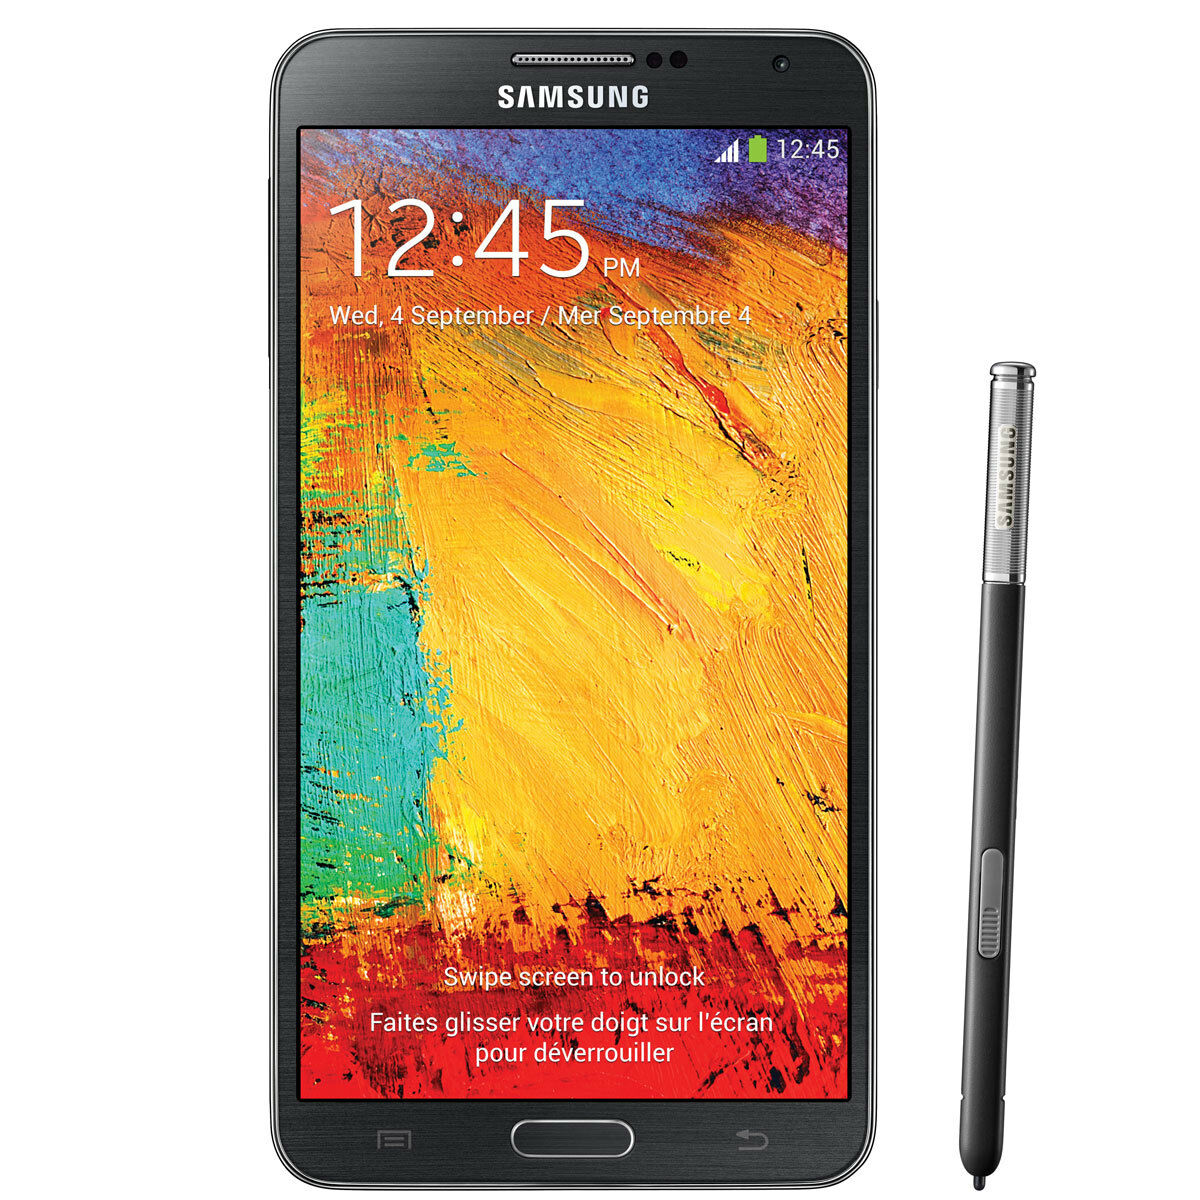 Samsung N900 Galaxy Note 3 32GB Android Verizon Wireless 4G LTE Smartphone